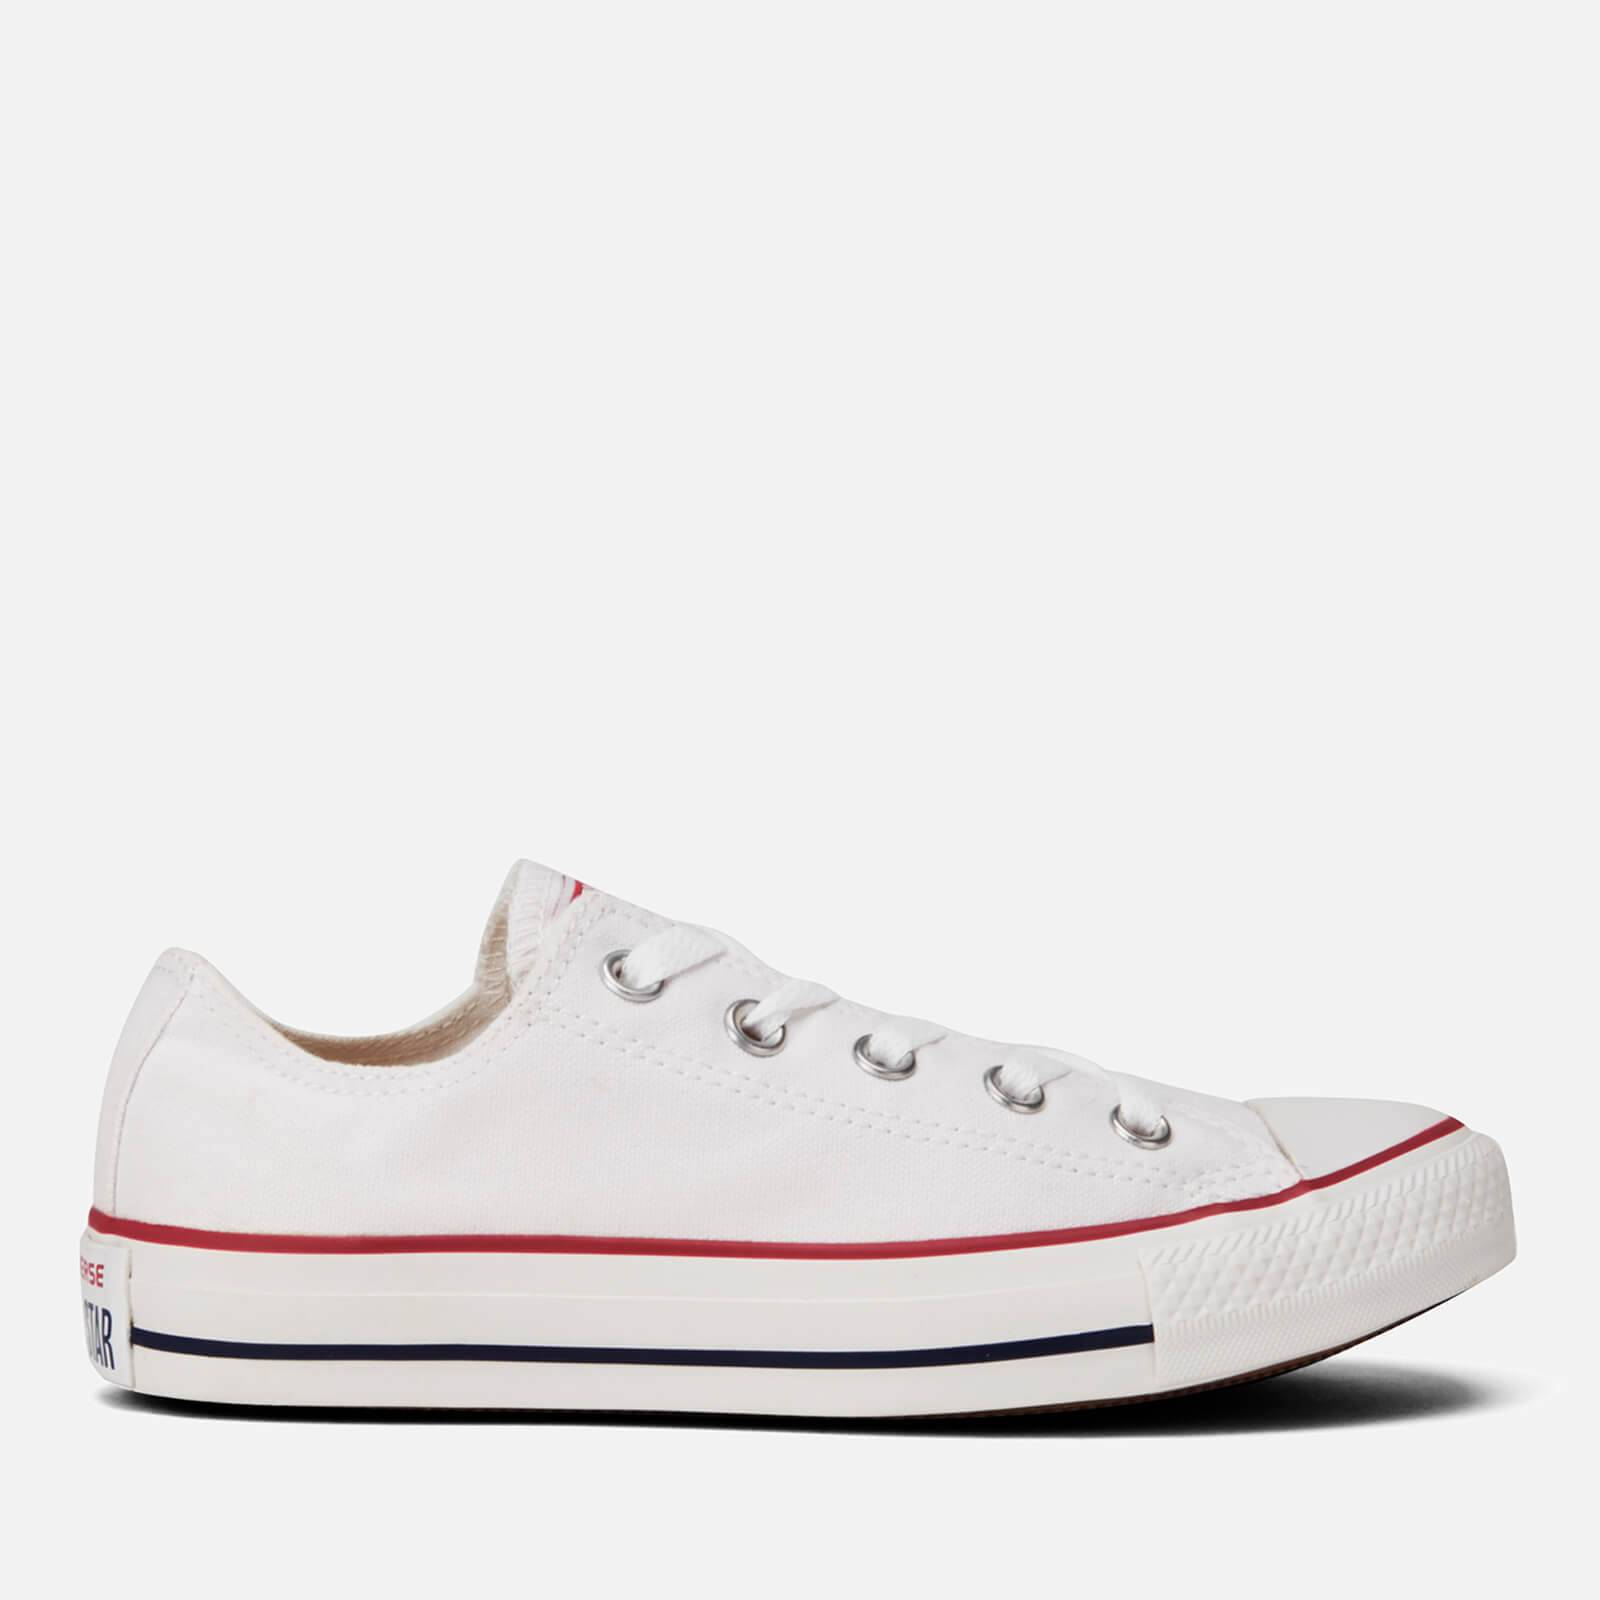 Converse Chuck Taylor All Star Ox Canvas Trainers - Optical White - UK 10